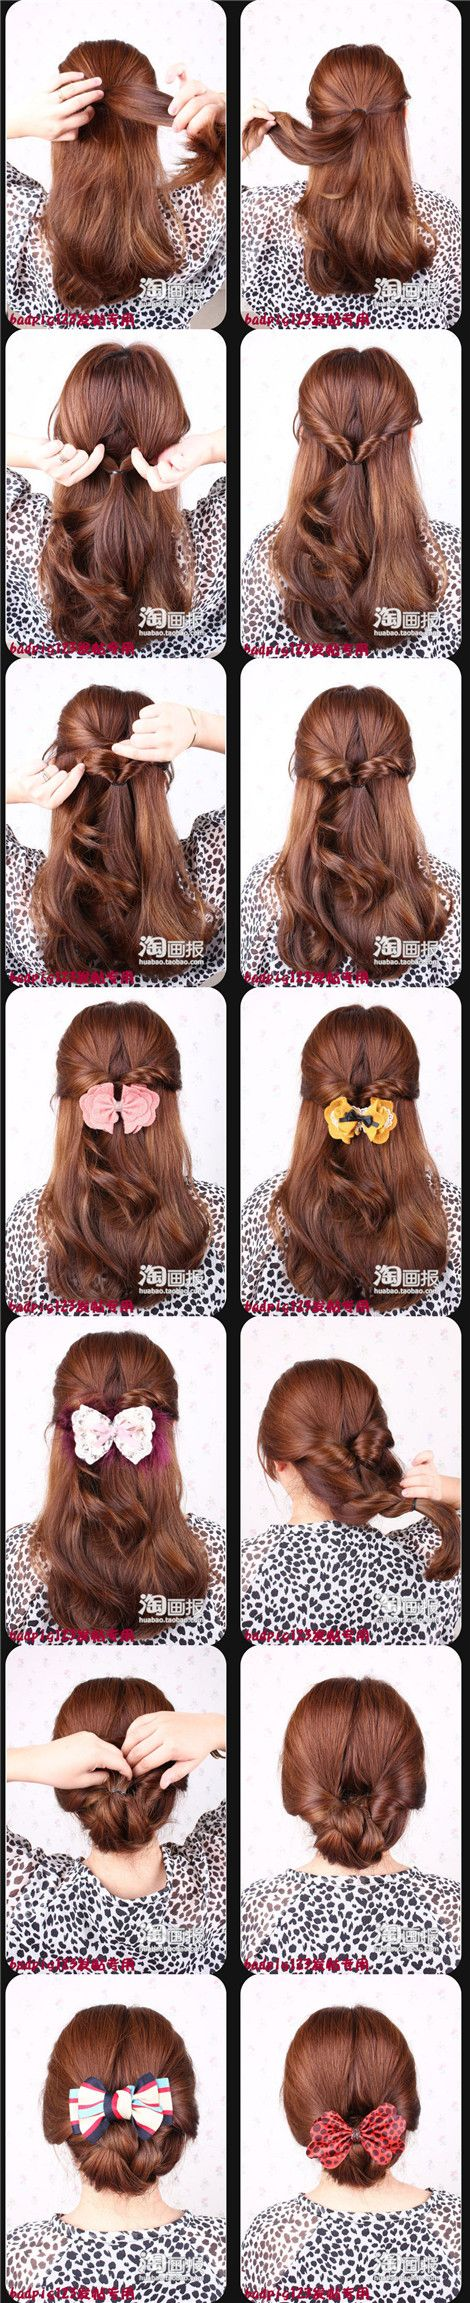 CuteHair Ideas, Korean Hair Style, Hair Tutorials, Long Hairstyles, Korean Hairstyles, Easy Hairstyles With Bows, Pony Tails, Ponies Tail, Double Twists